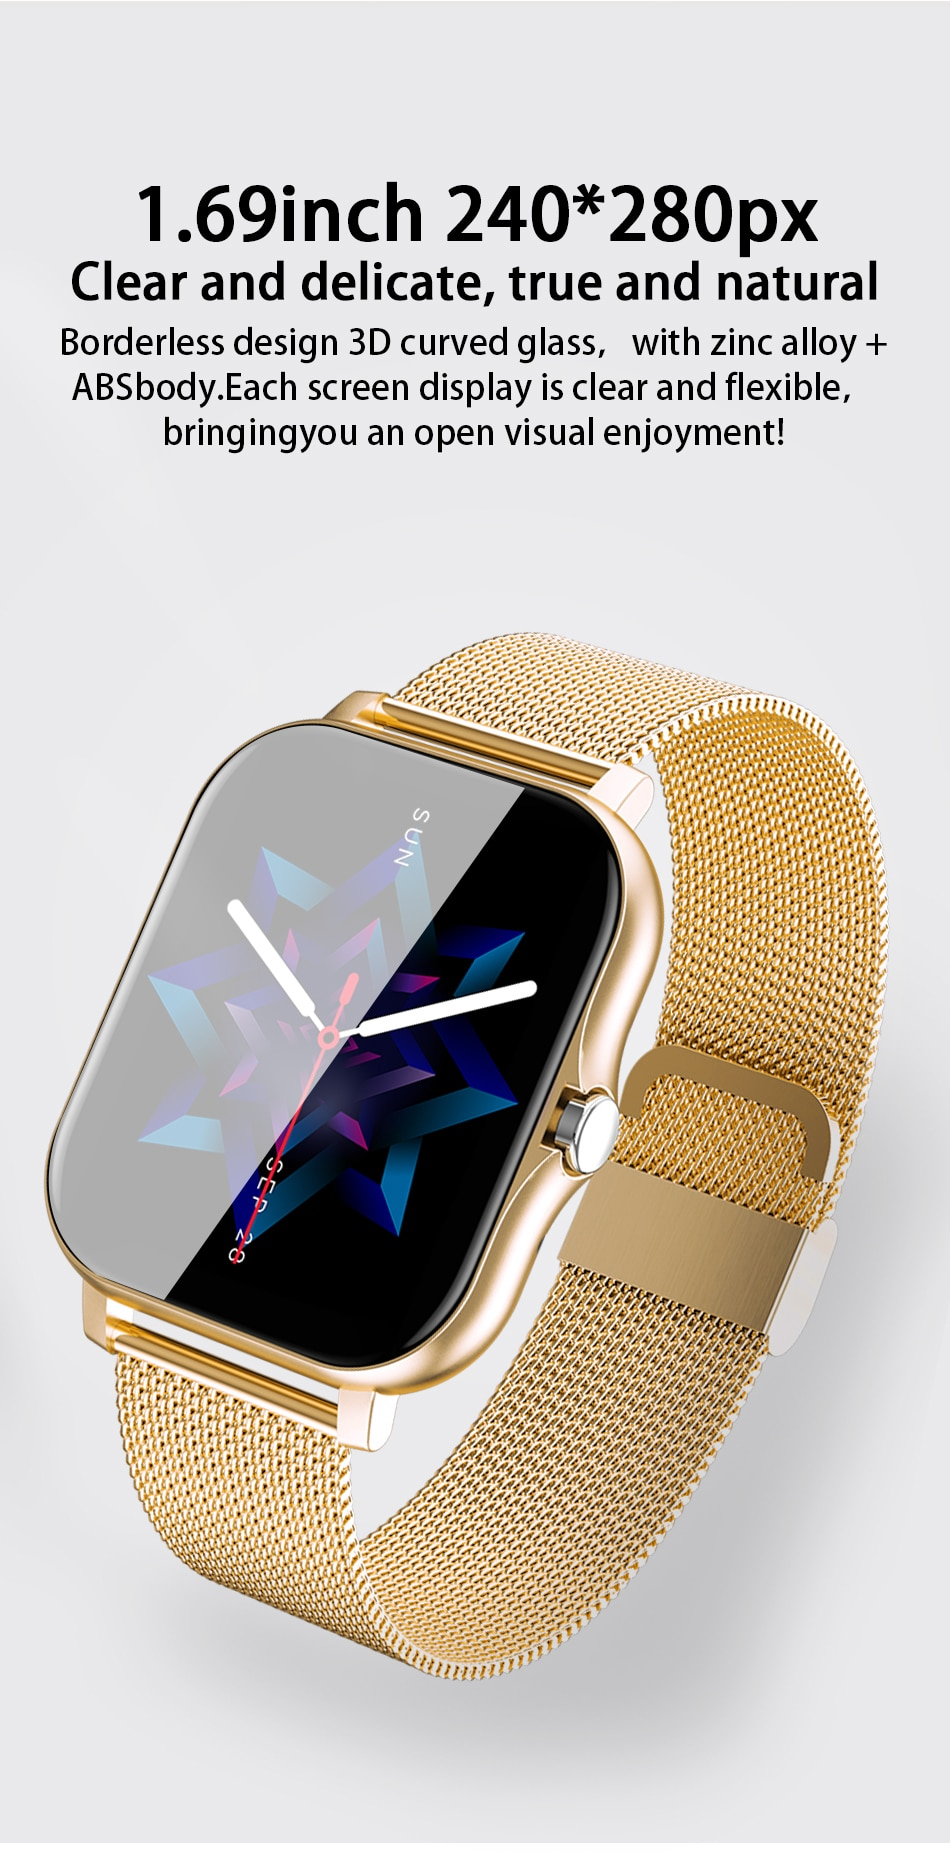 Hae69cbce1e254b4aab7abaa7b1f1d76fd - LIGE 2021 New Women Smart Watch 1.69 Color Screen Full Touch Fitness Tracker Bluetooth Call Smart Clock Ladies Smartwatch Men